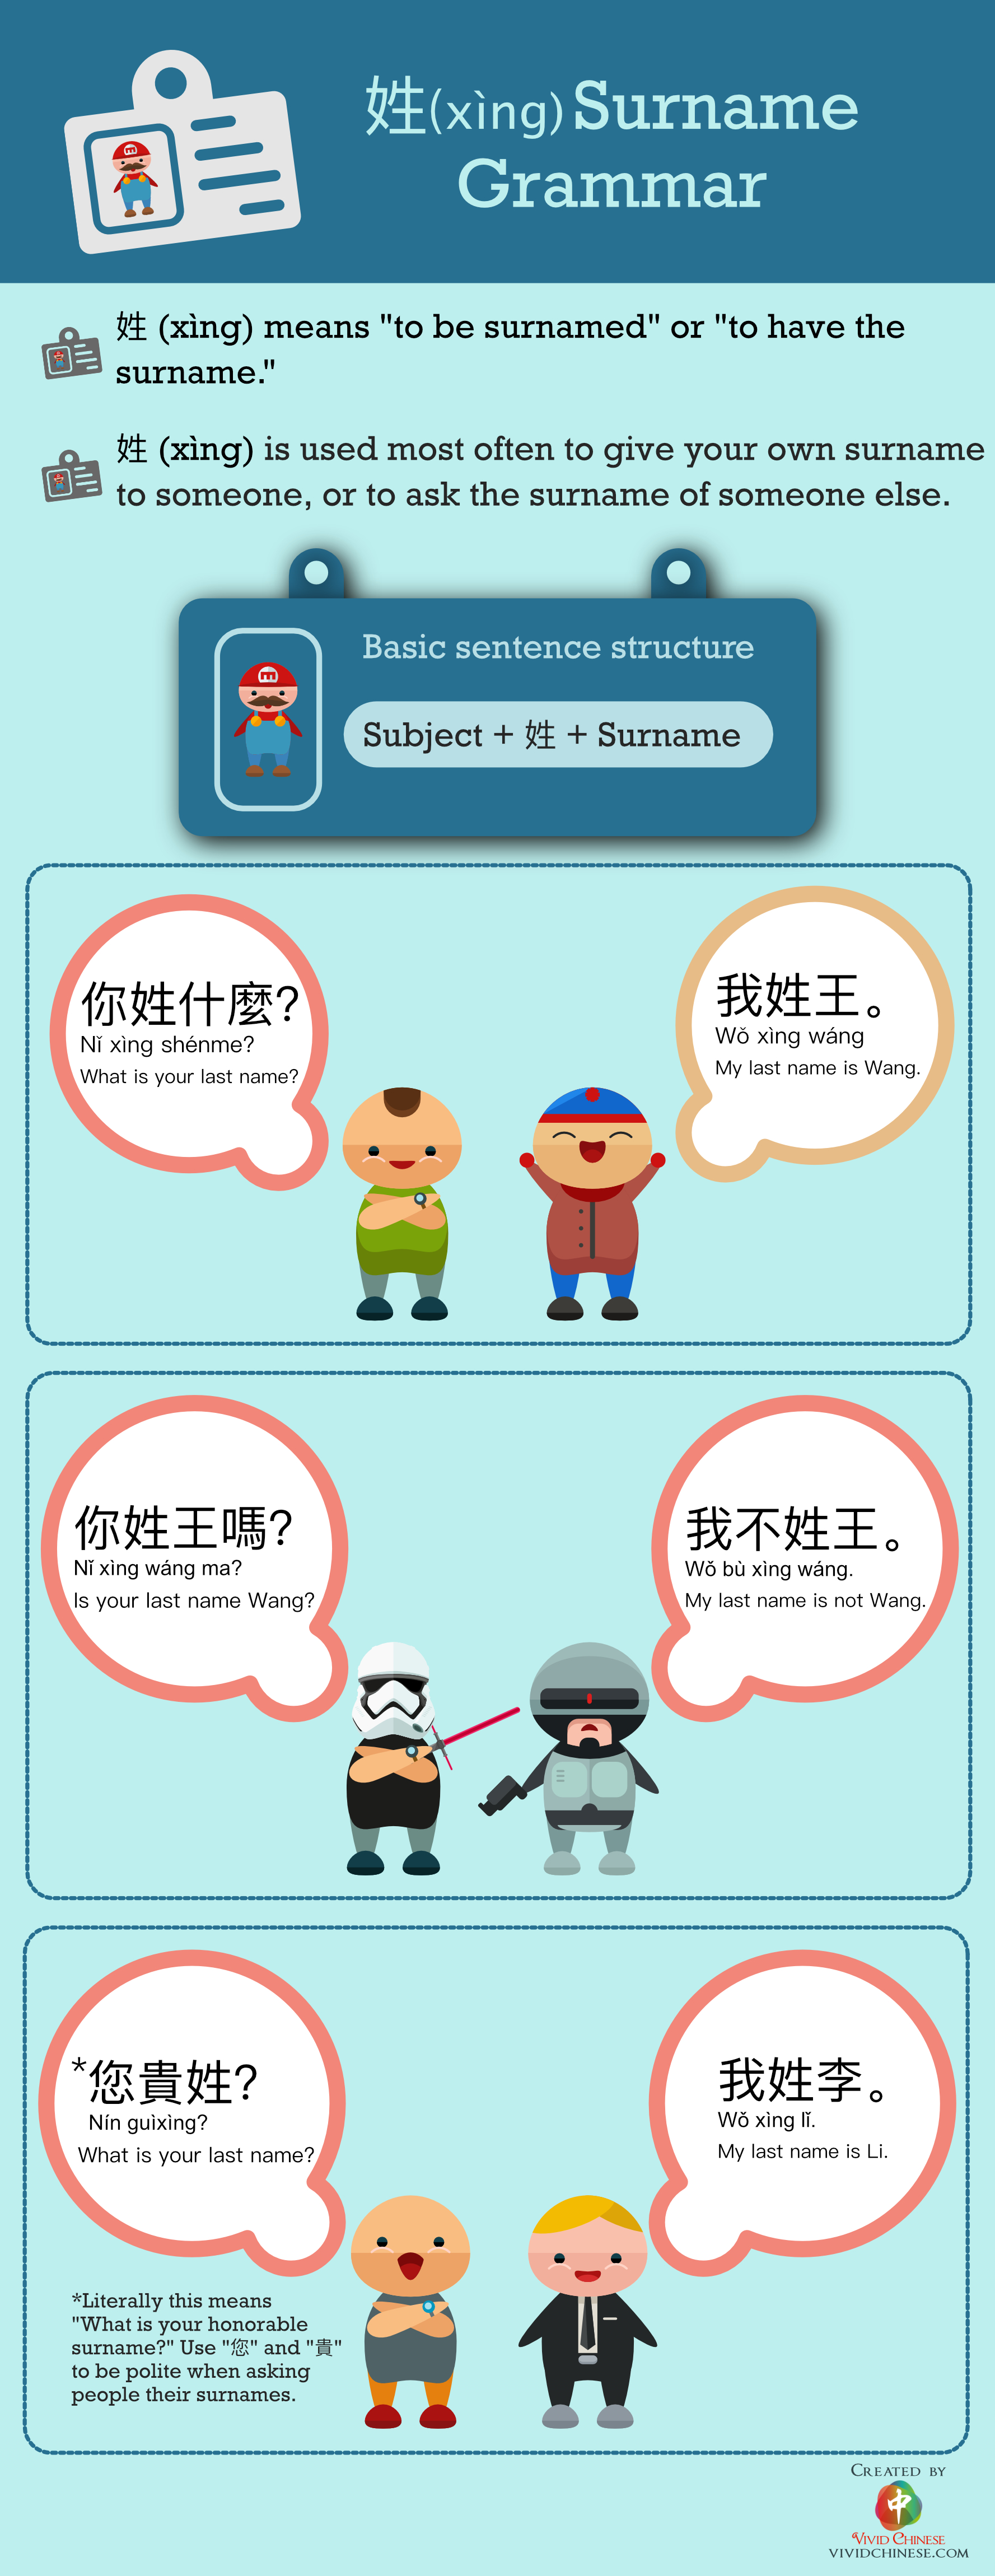 Surname in Chinese Traditional Chinese Version Infographic